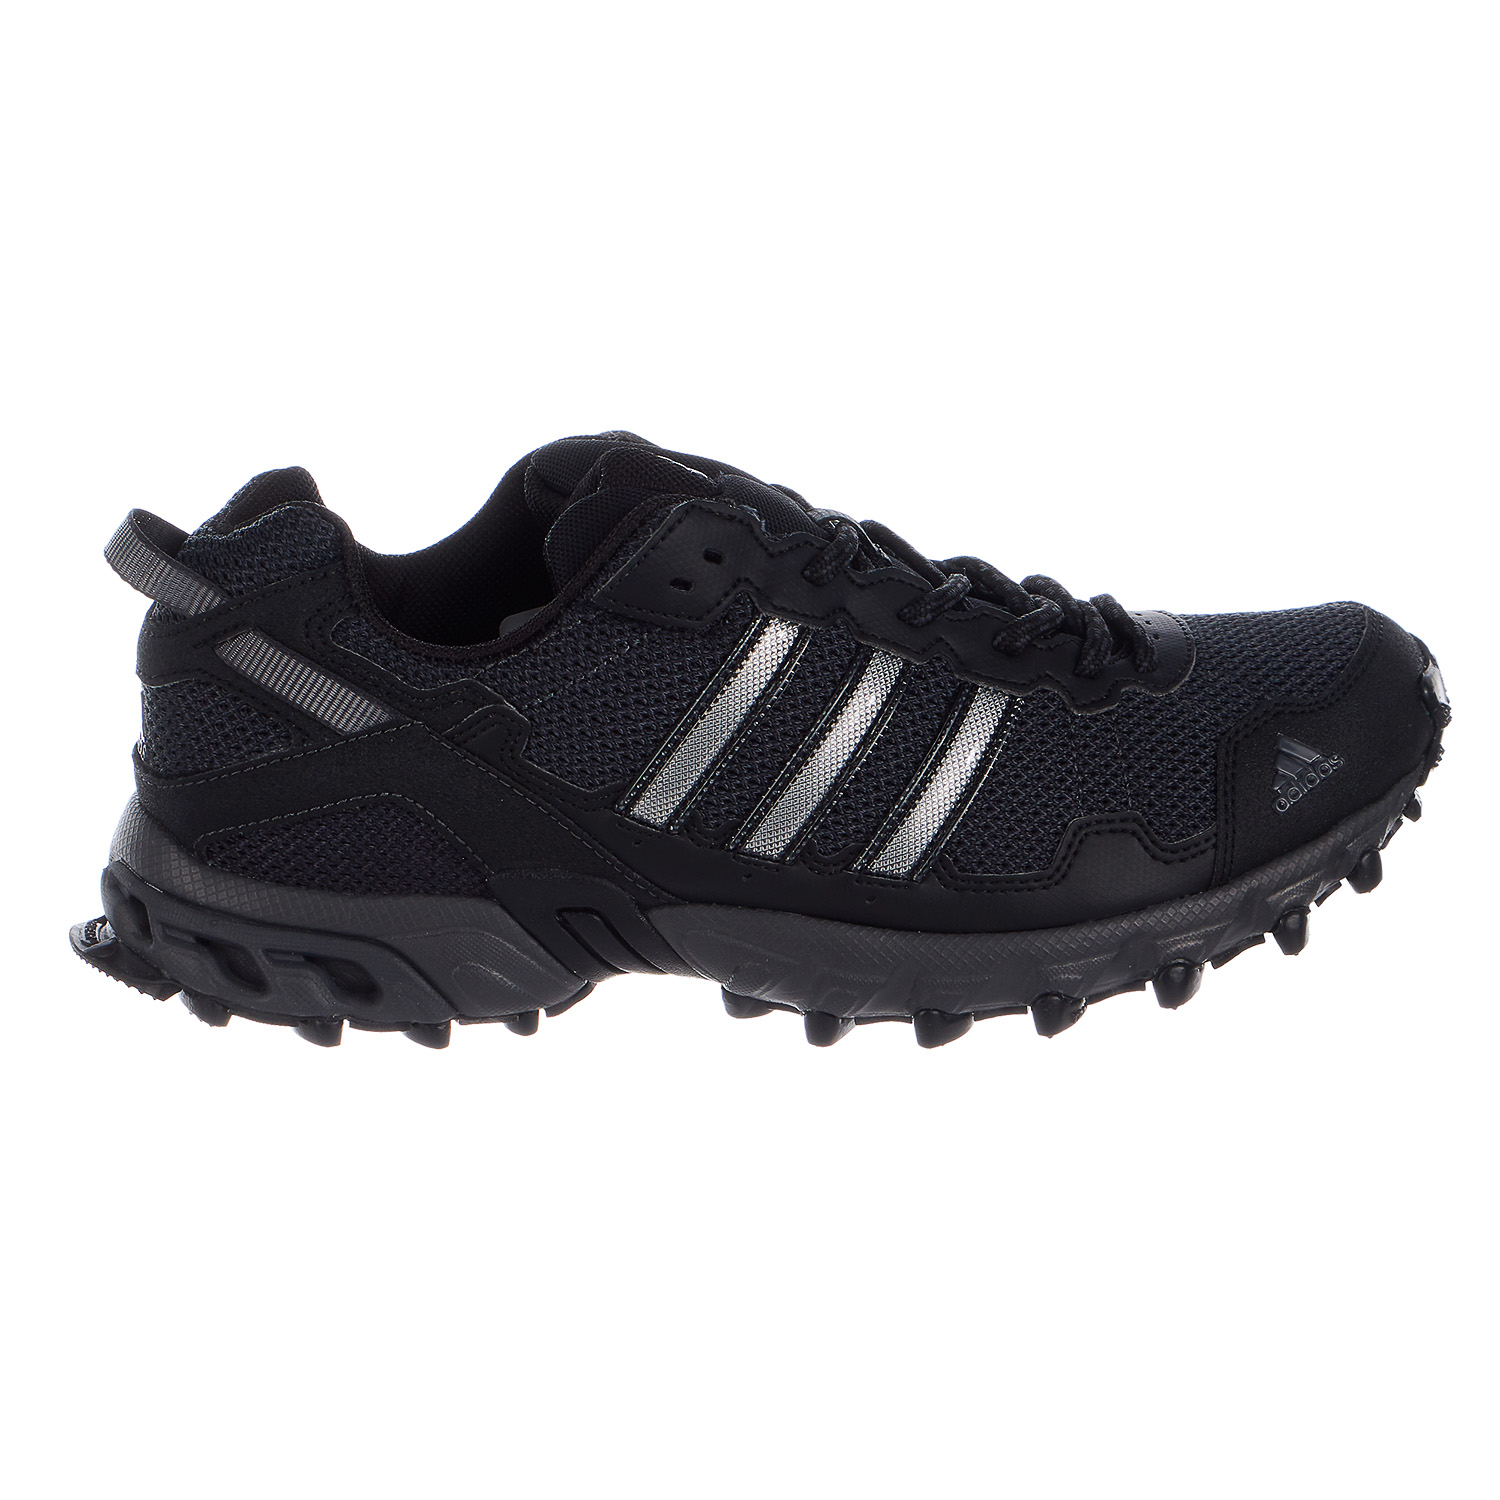 Cien años horno Contribuyente  adidas trail running shoes mens Online Shopping for Women, Men, Kids  Fashion & Lifestyle|Free Delivery & Returns! -